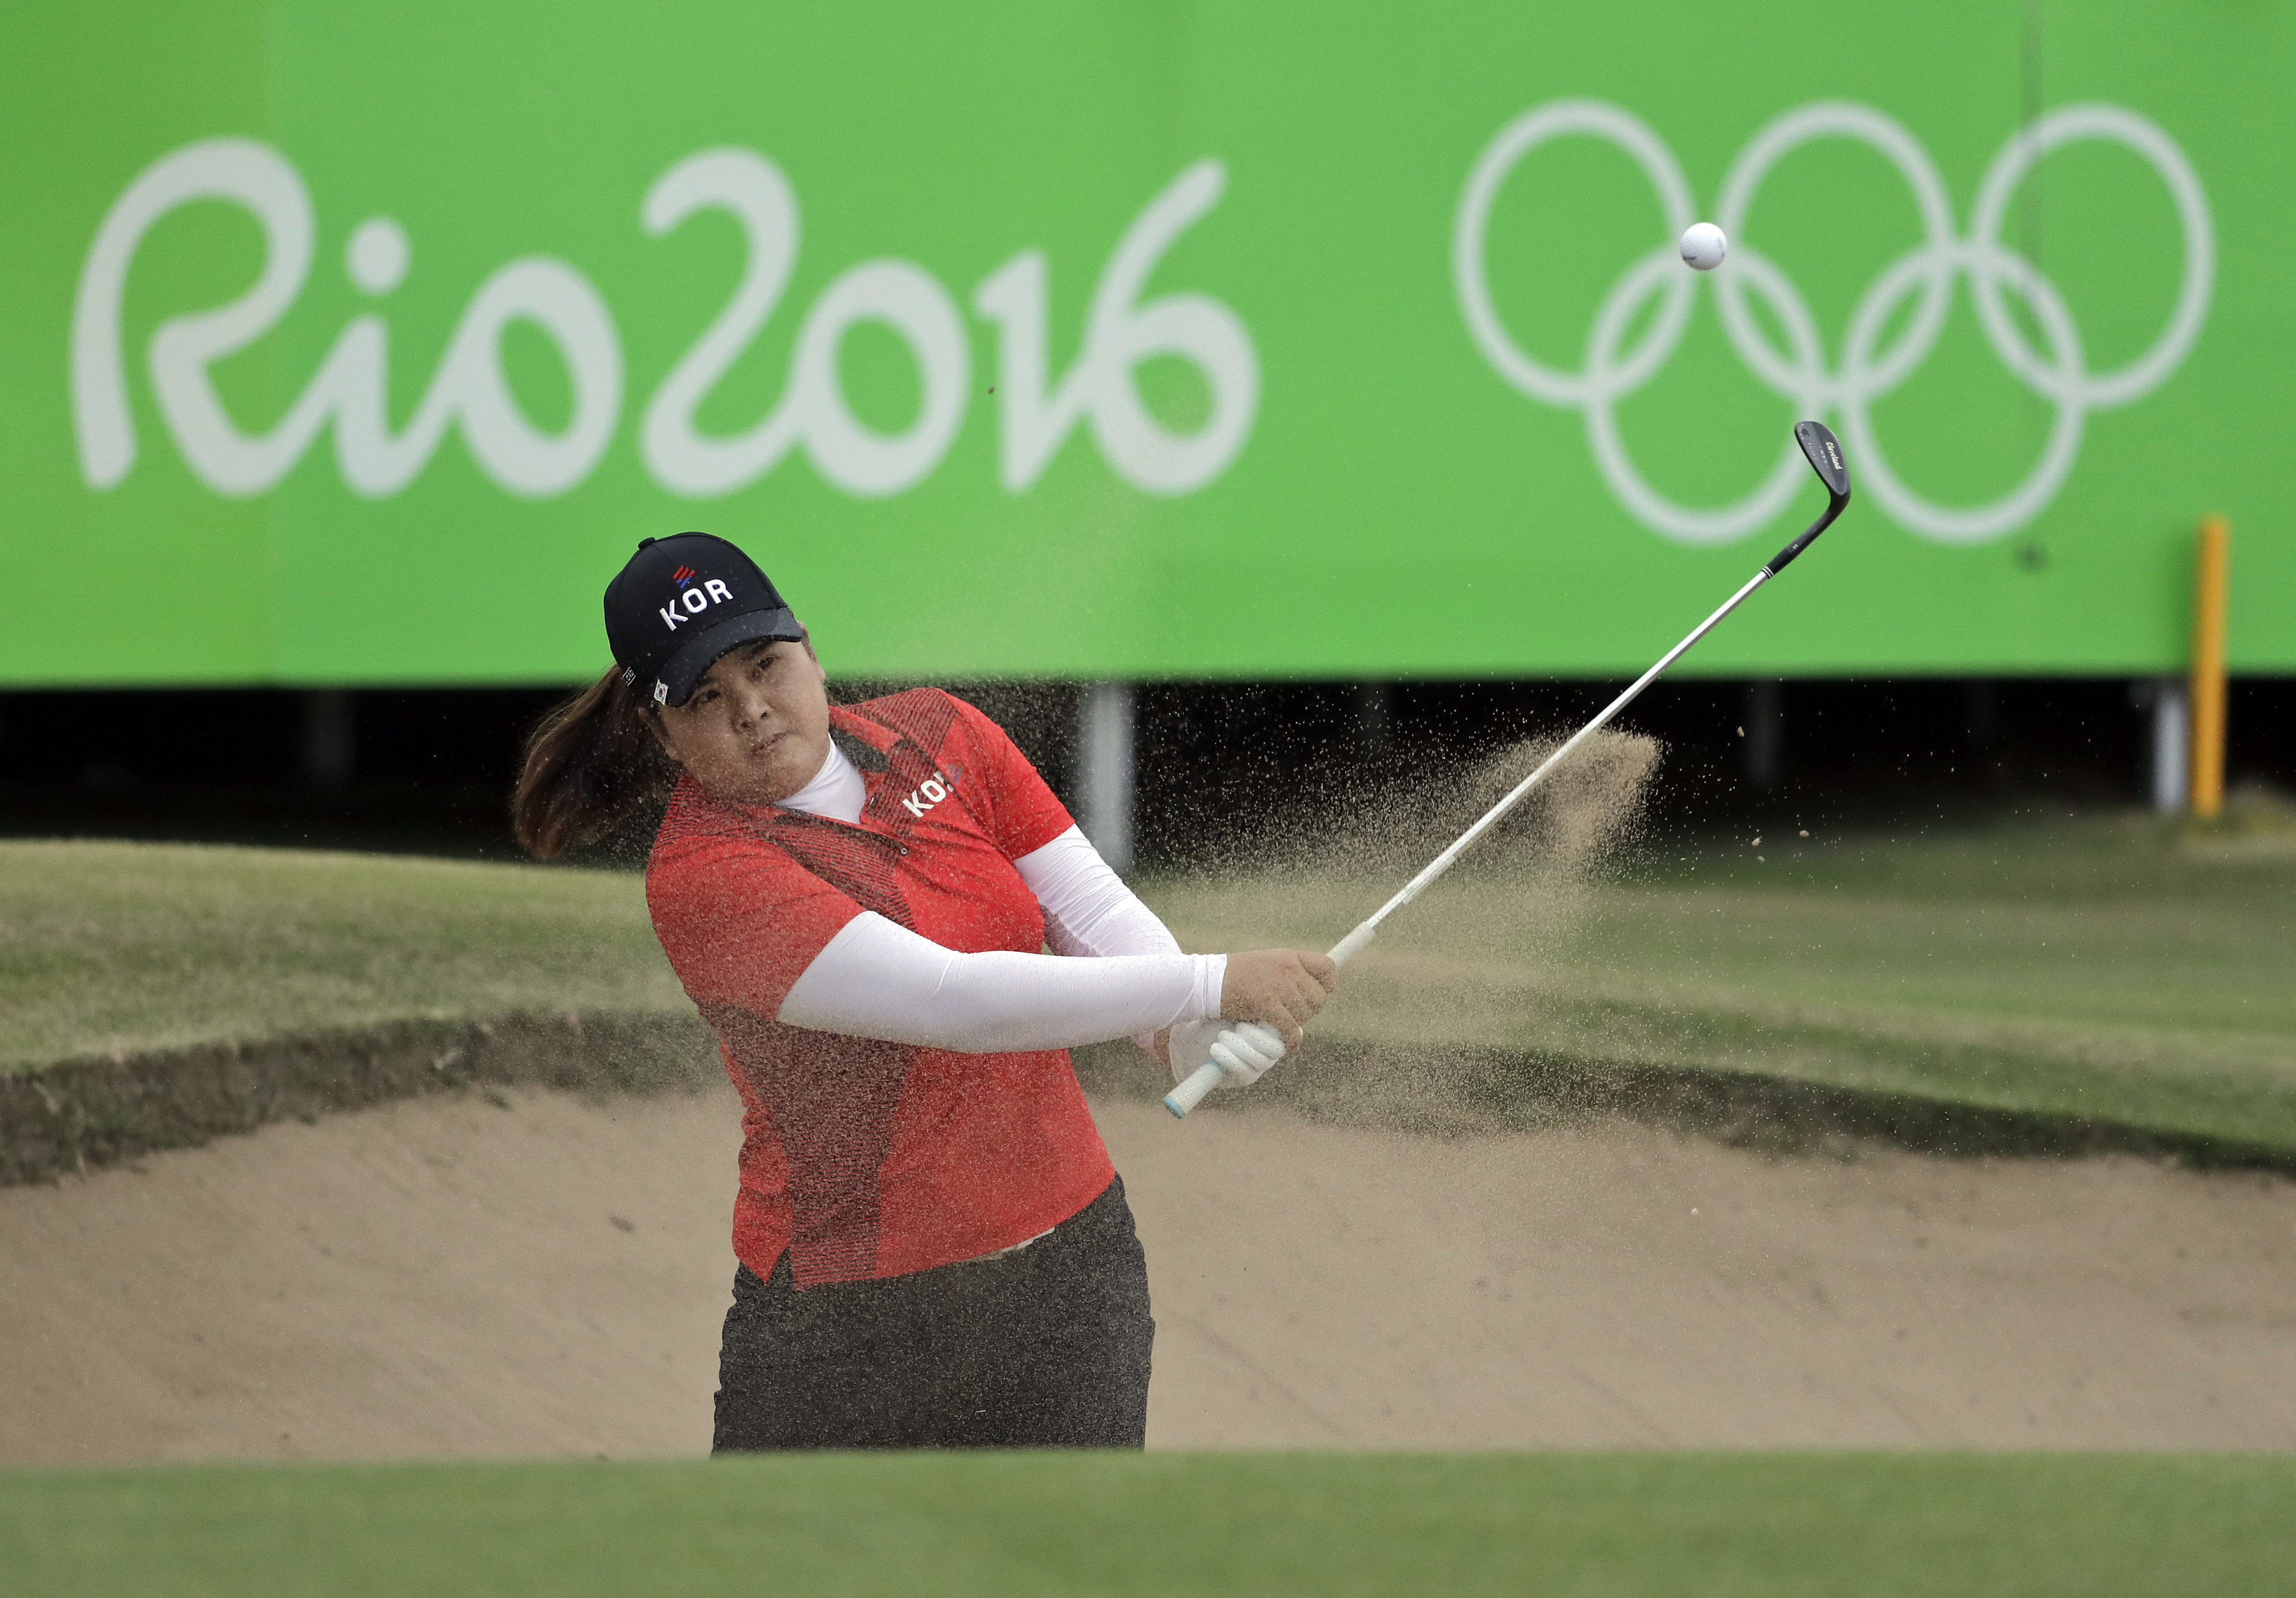 Inbee Park of South Korea, hits from the bunker on the 18th hole during the final round of the women's golf event at the 2016 Summer Olympics in Rio de Janeiro, Brazil, Saturday, Aug. 20, 2016. Park won the gold medal. (AP Photo/Chris Carlson)